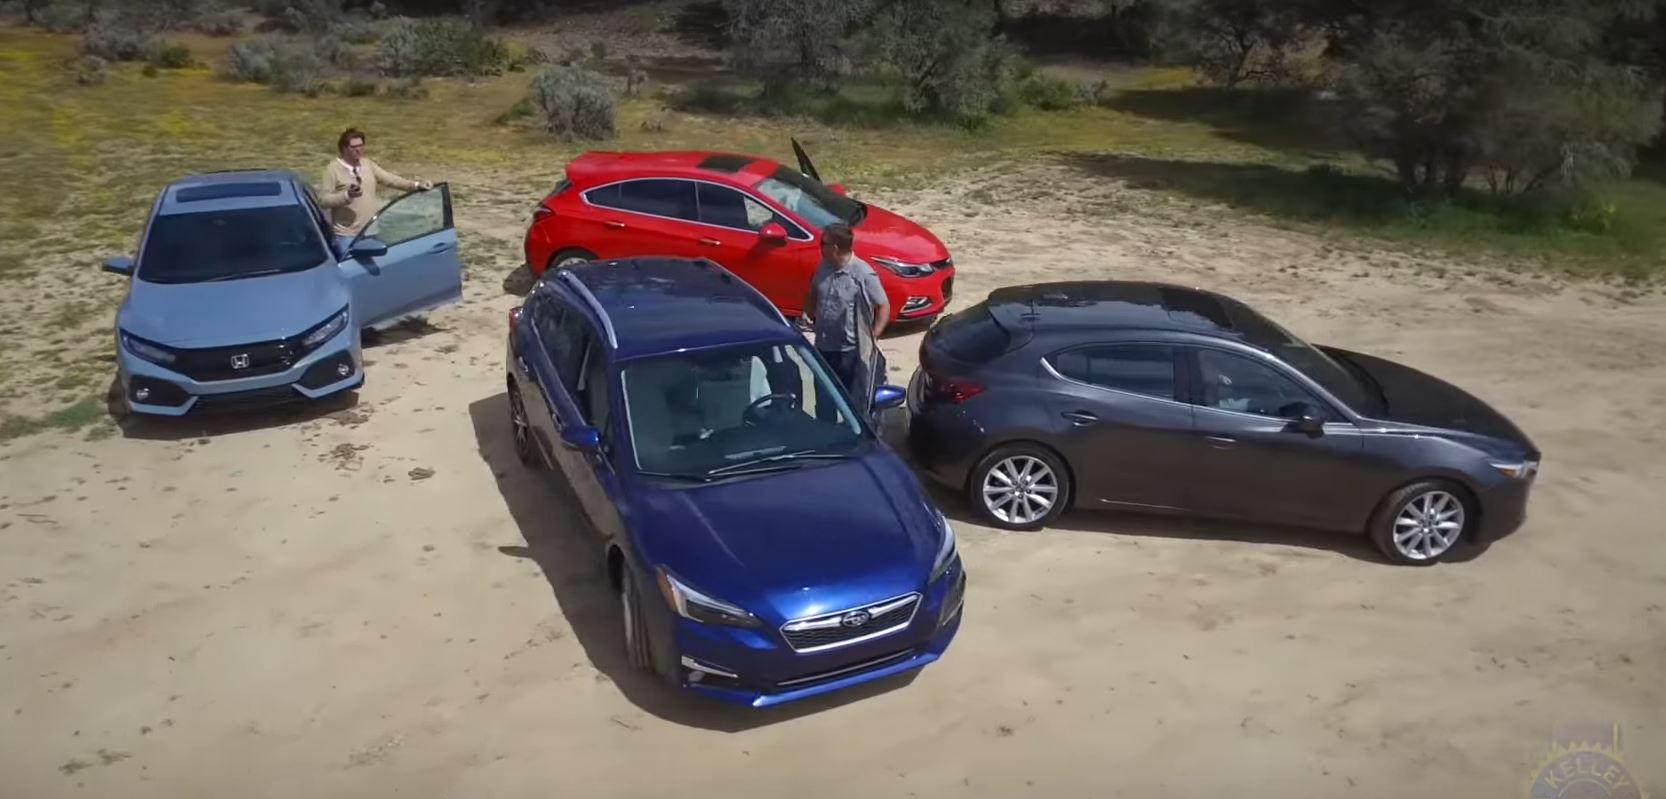 2017 Best Hatchback Comparison Suggests Civic And Impreza Are The